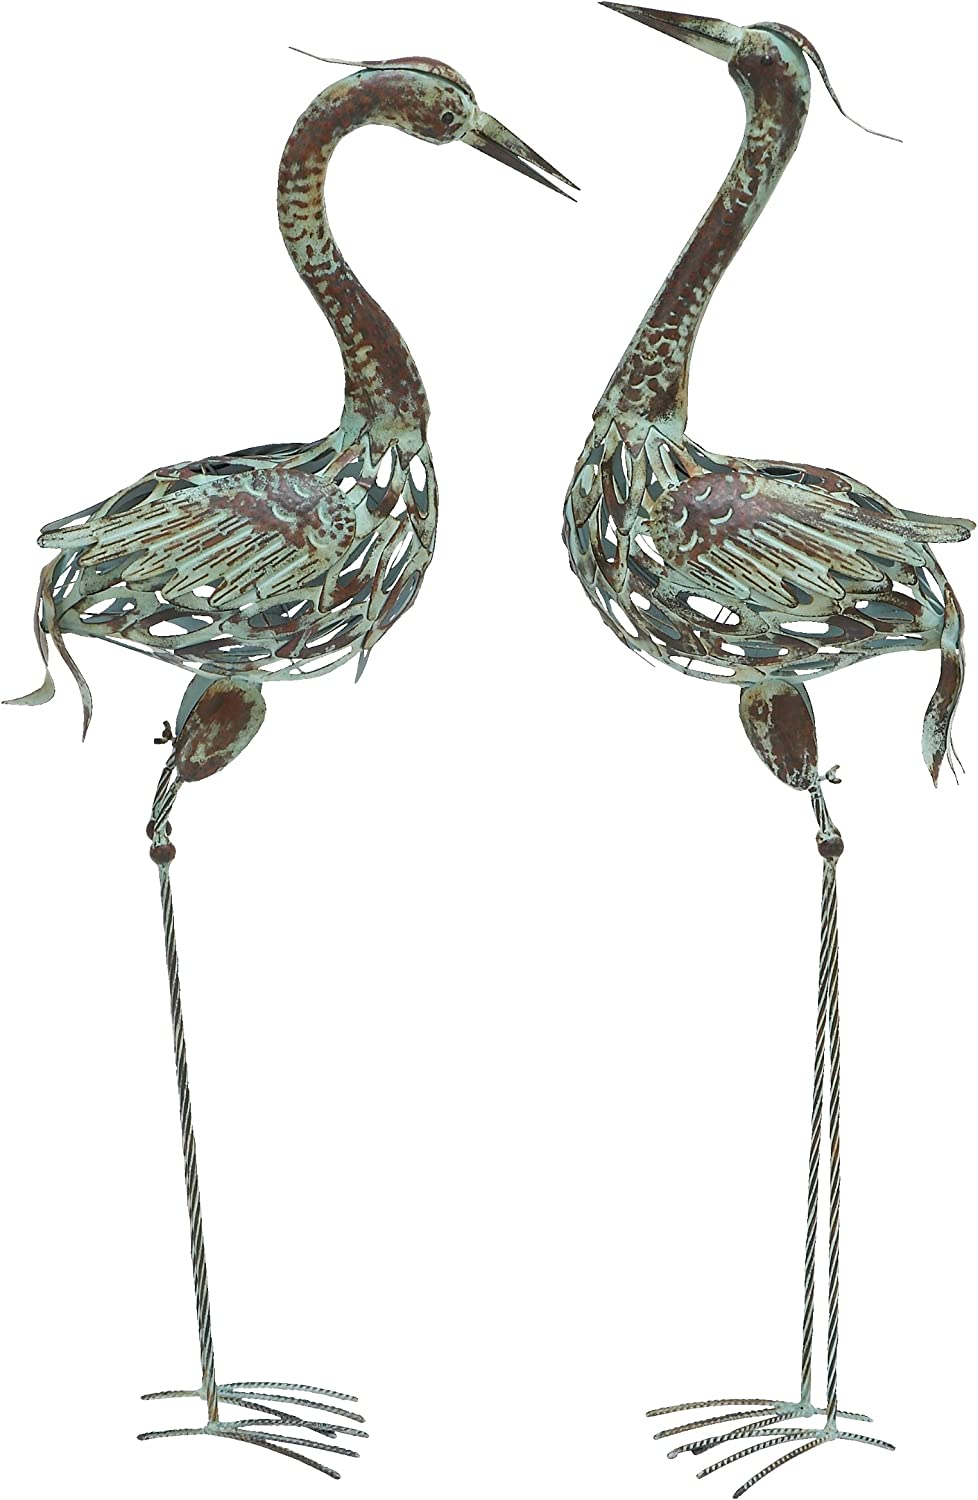 Deco 79 50401 Metal Decorative Crane Statue, 40 by 38-Inch, Set of 2